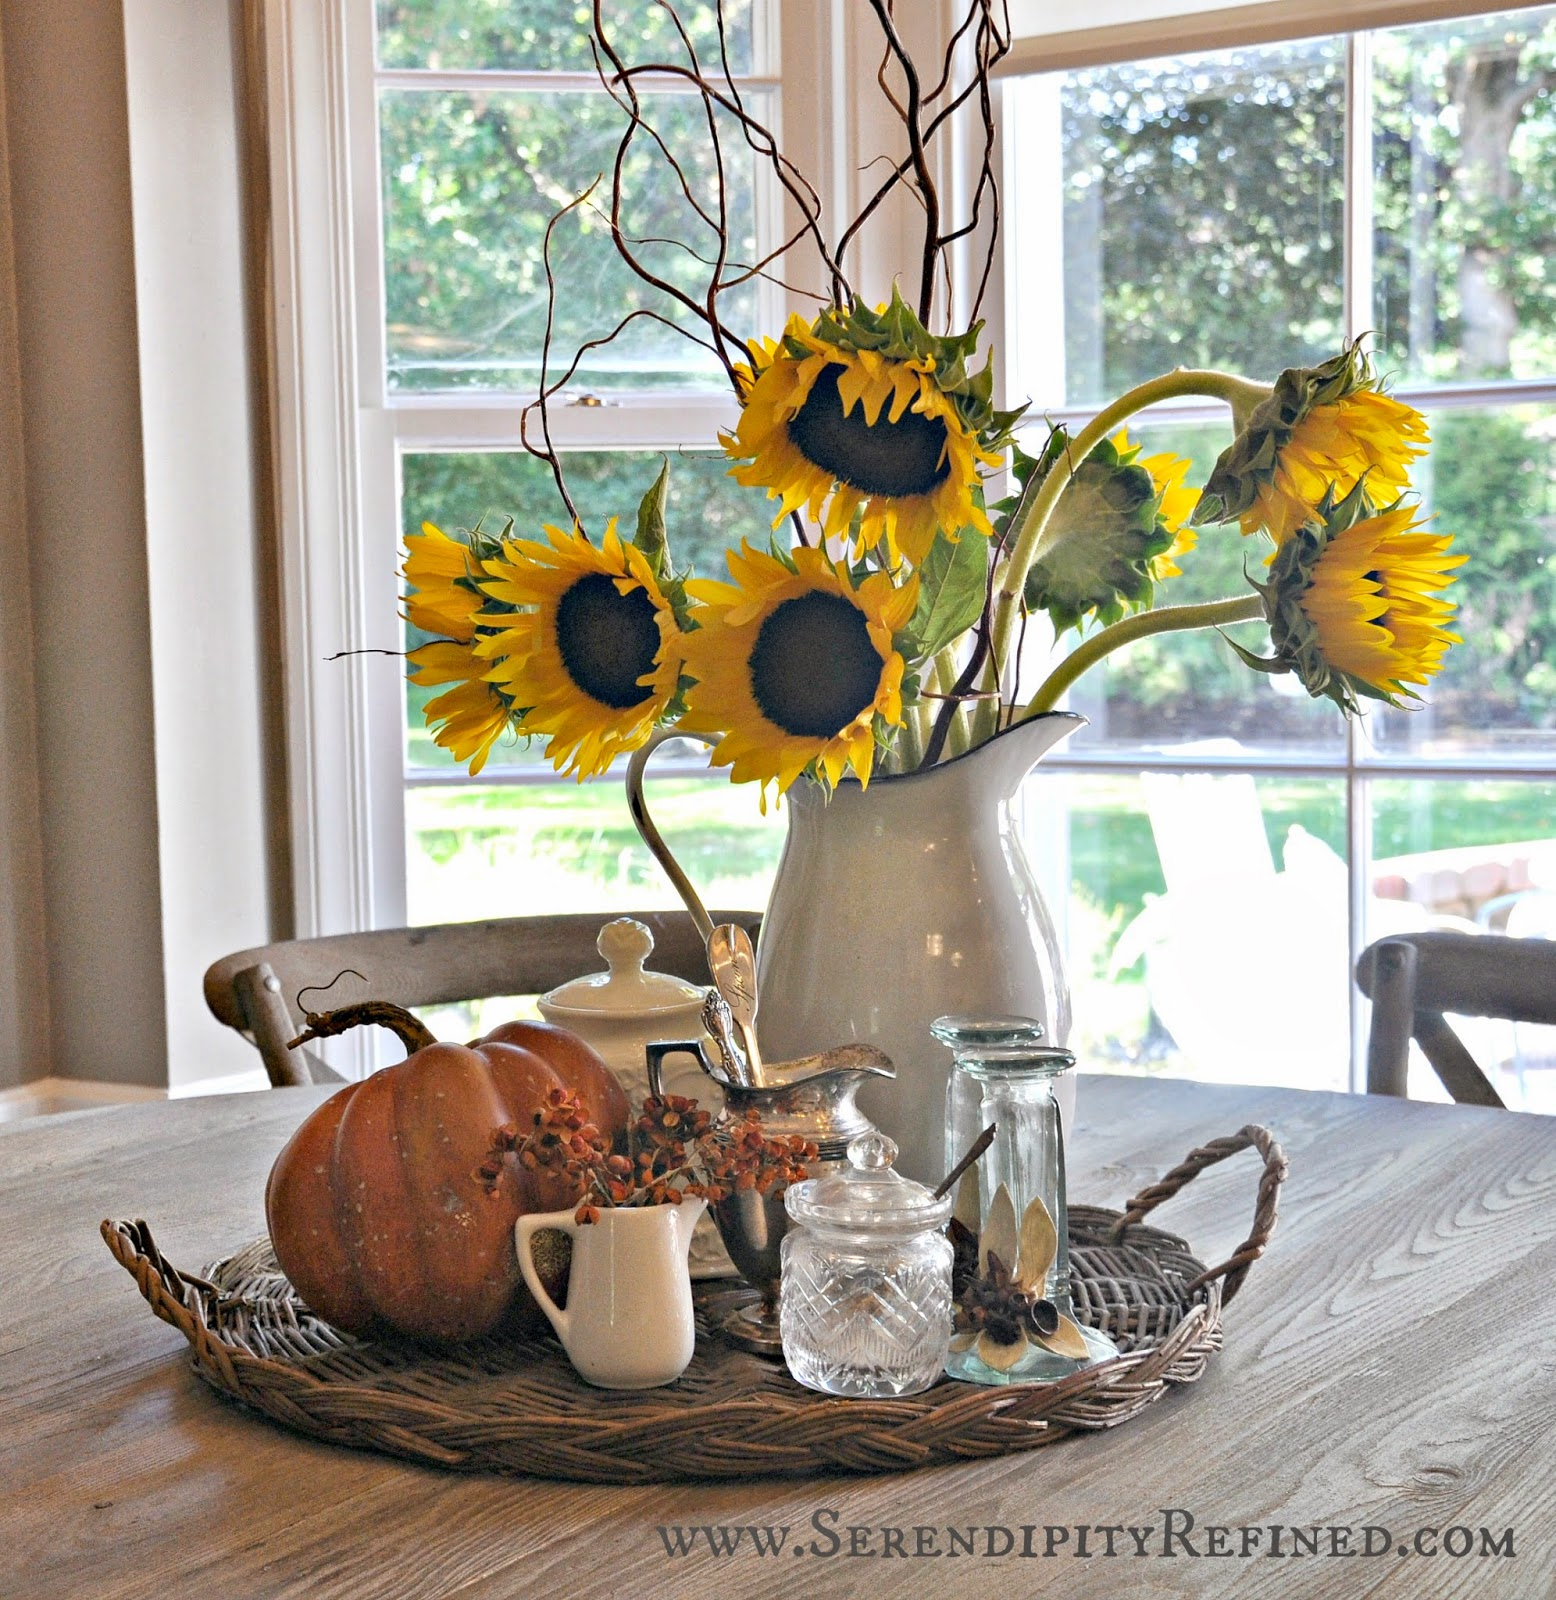 Decoration For Kitchen Table: Serendipity Refined Blog: Inside The French Farmhouse: Fall Decorating With Pumpkins, Pinecones